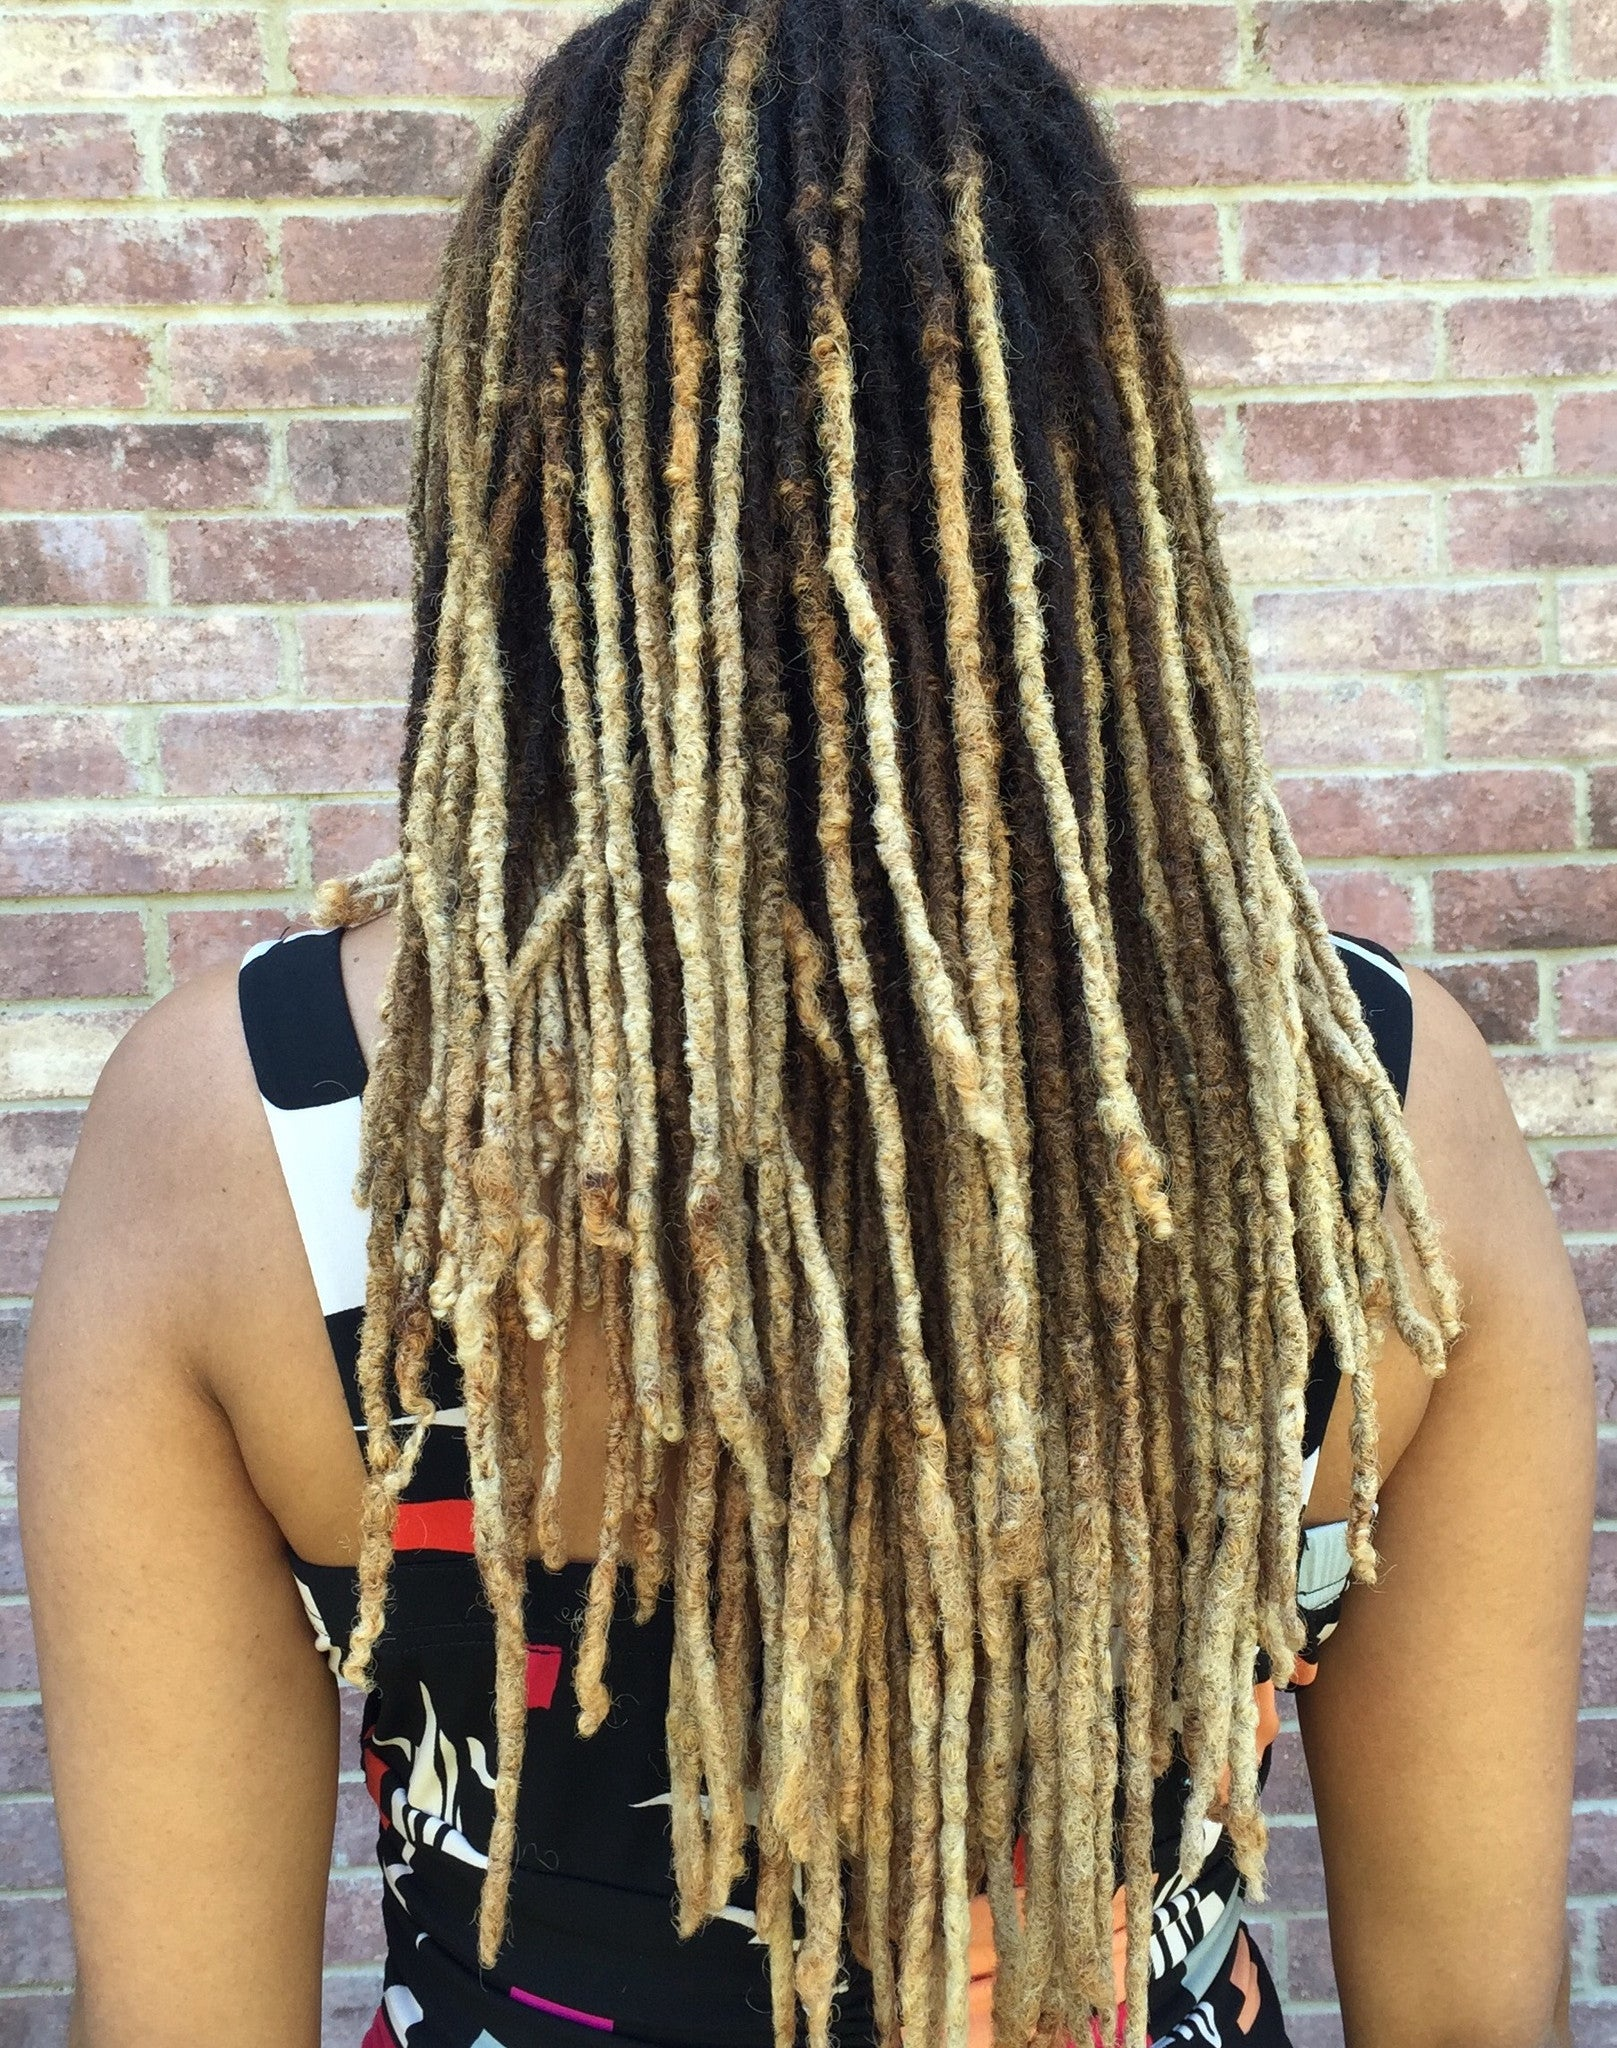 MY TRANSITION TO BLONDE LOCS - PART 2